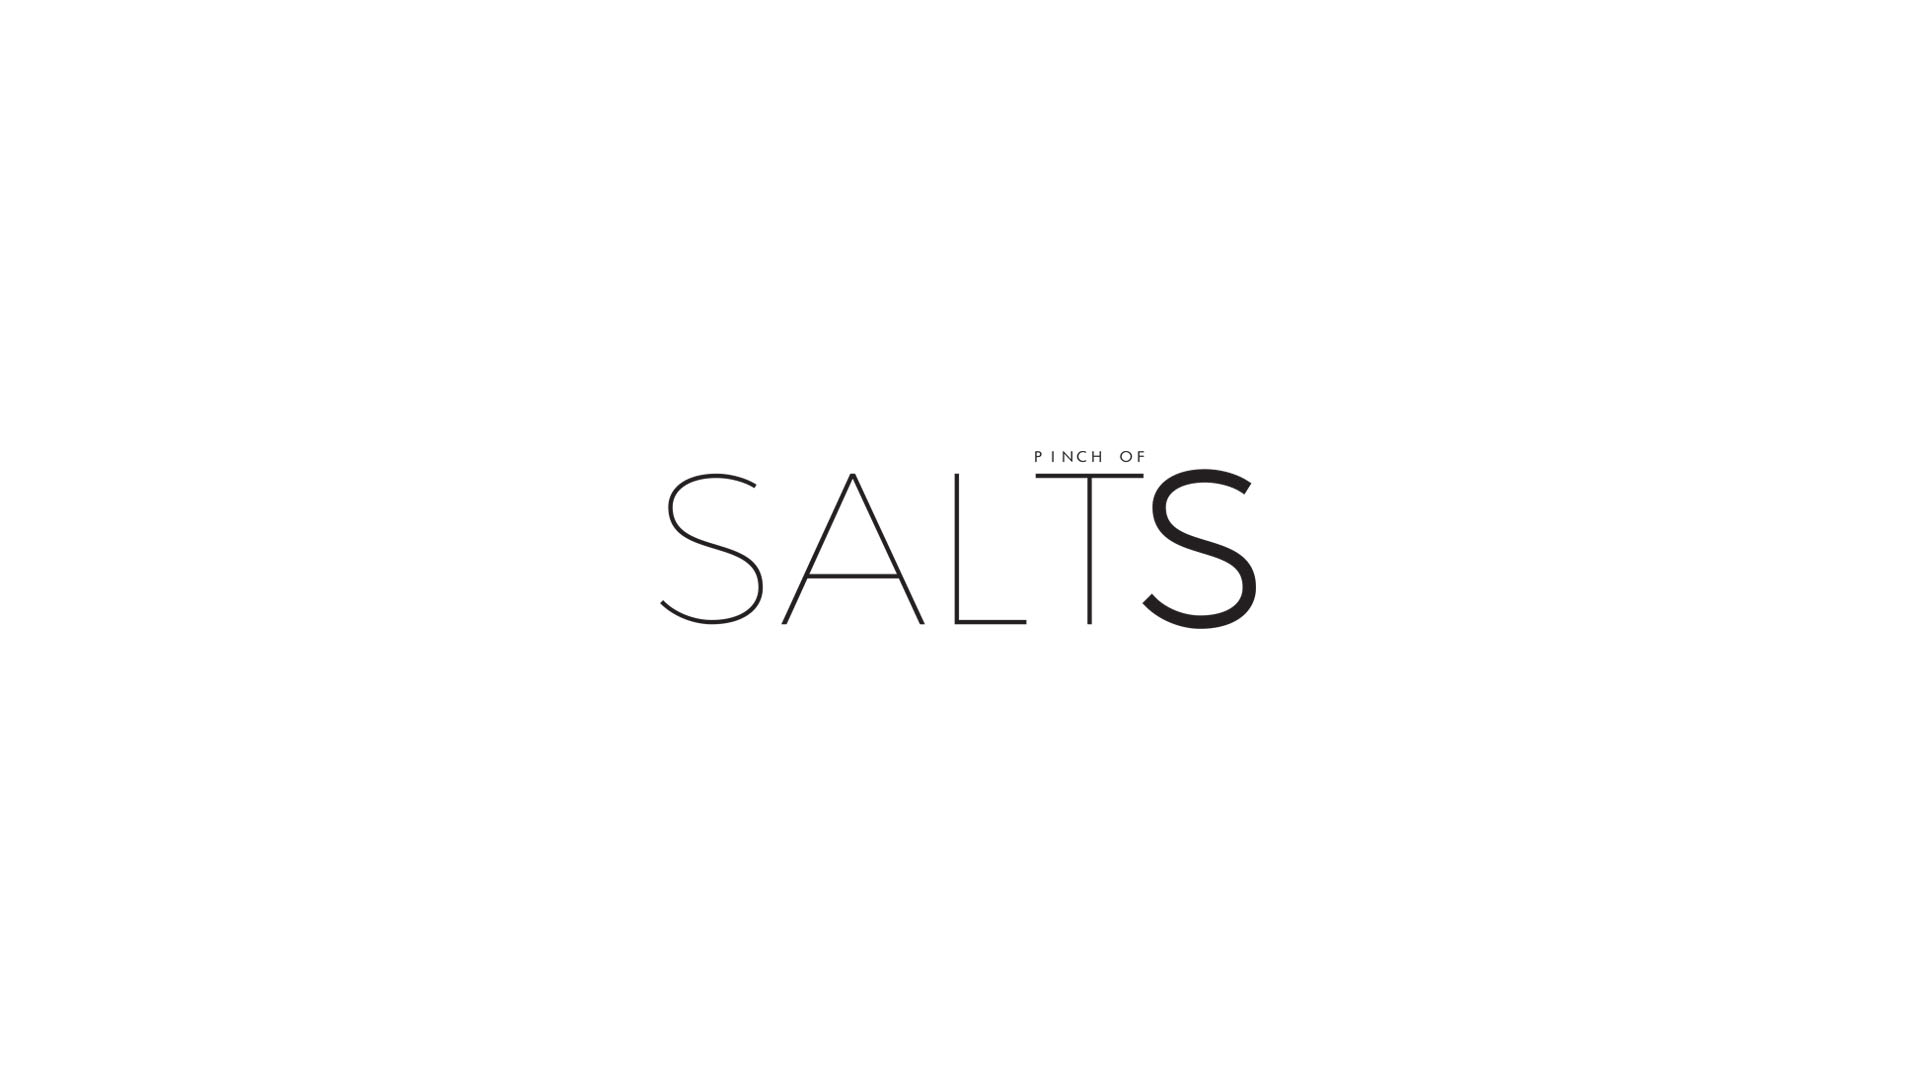 Pinch of Salts are a Finalist in the ECHO Regional Business Awards 2021